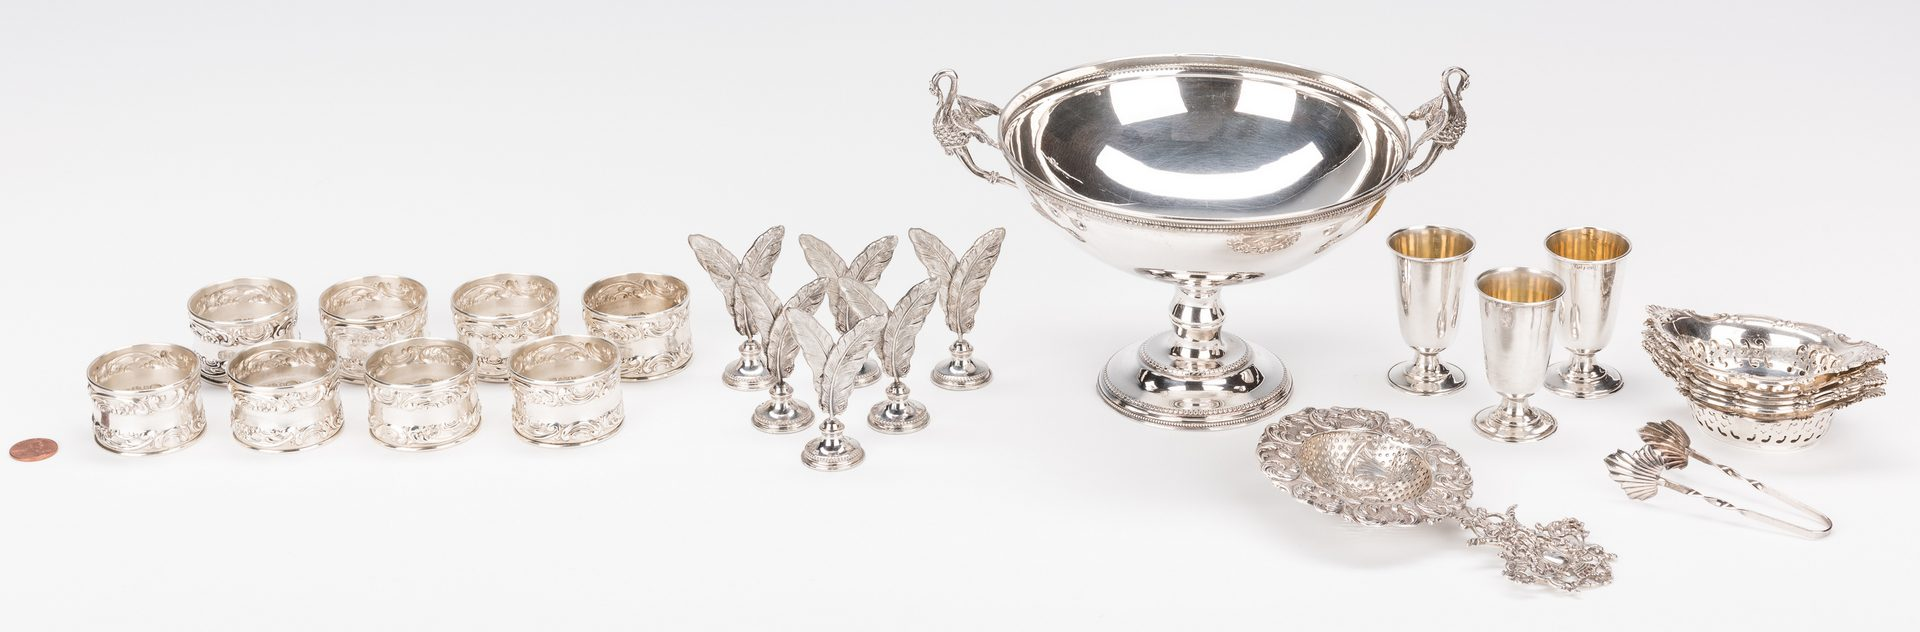 Lot 709: Group of Sterling; .800 Silver Items, 26 Pcs.